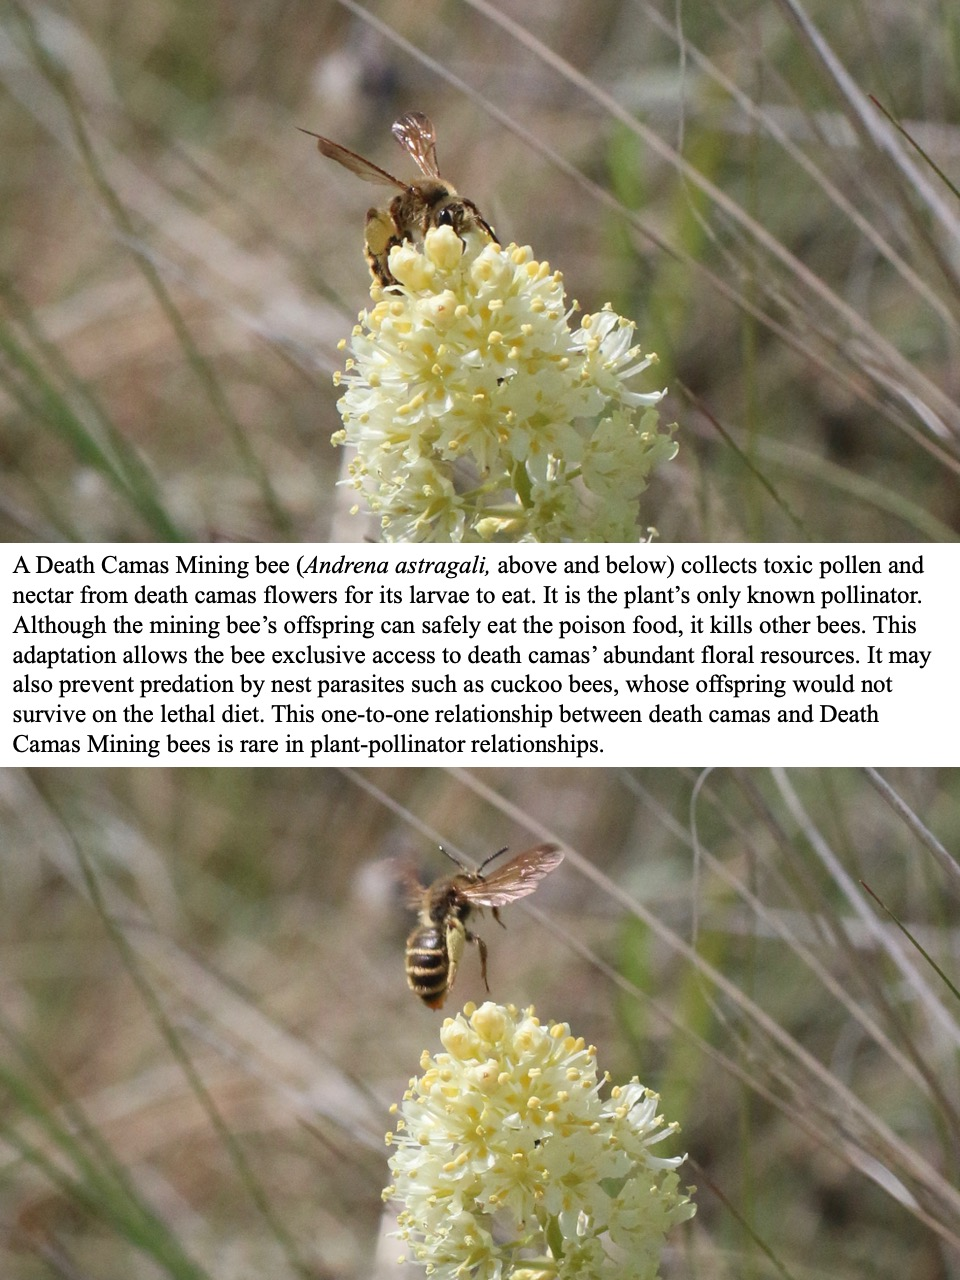 Death Camas Mining bee (Andrena astragali, above and below) collects toxic pollen and nectar from death camas flowers for its larvae to eat.